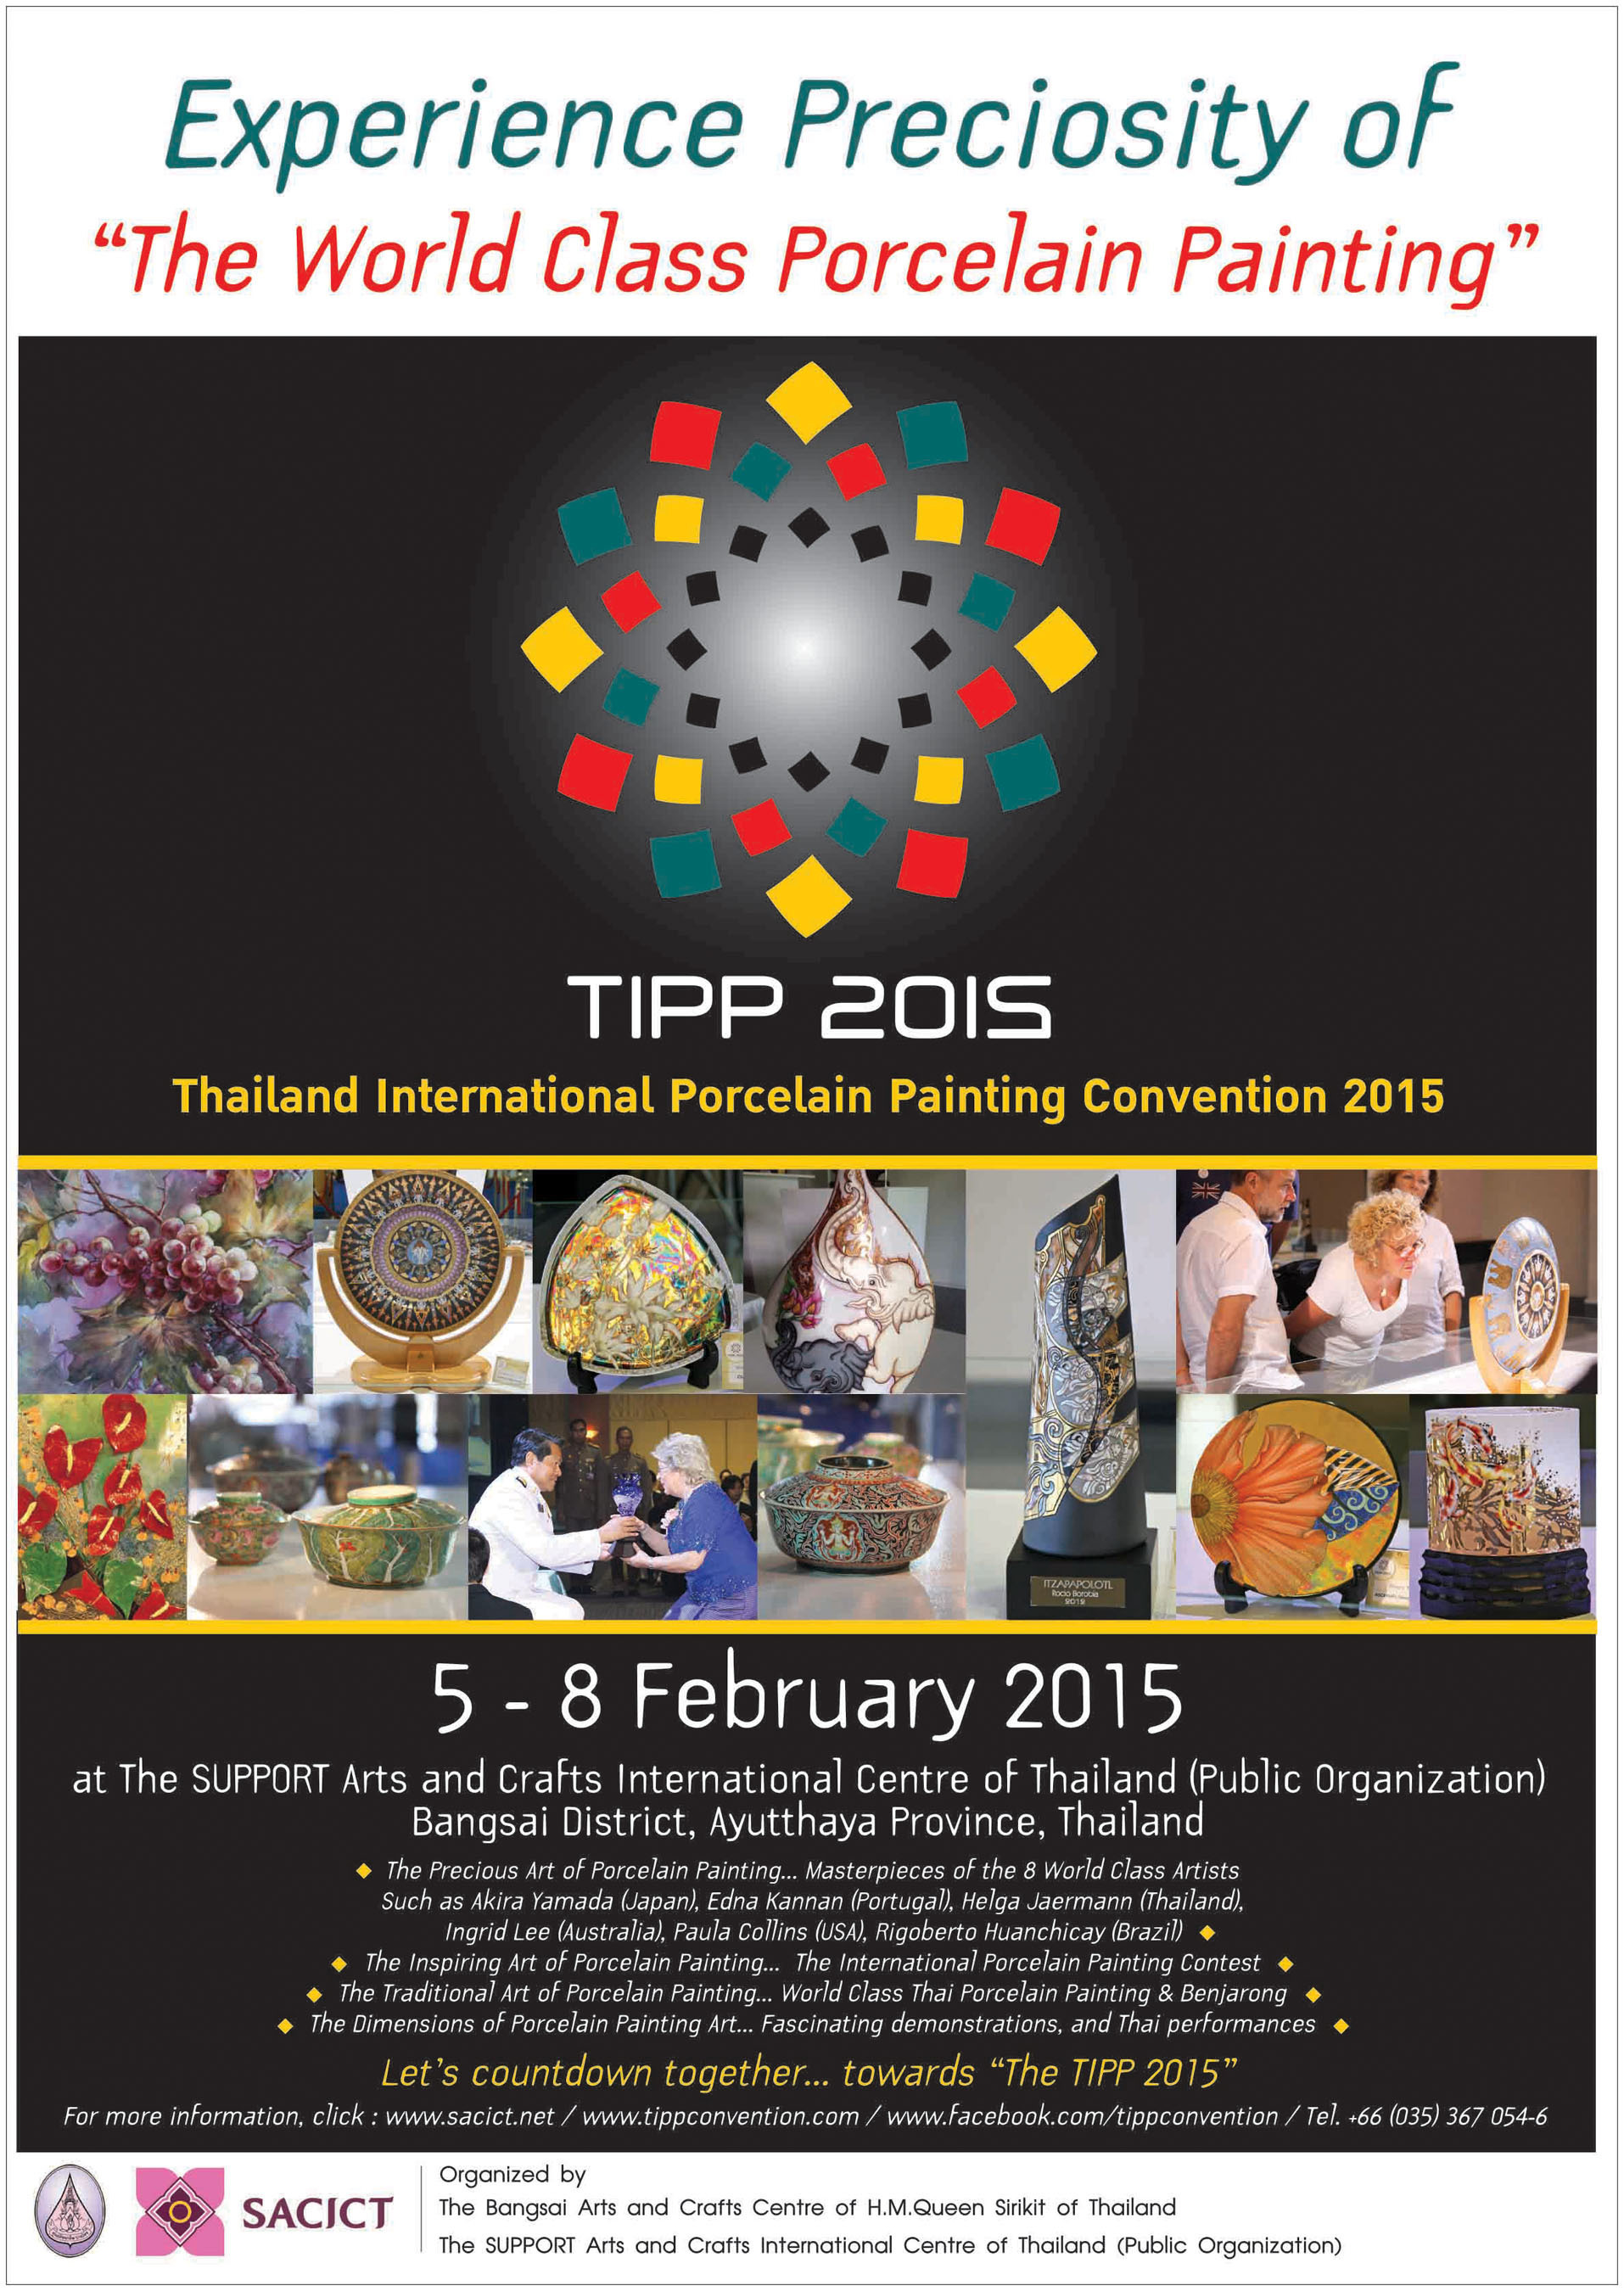 Thailand International Porcelain Painting Convention 2015 is Announced, Feb. 5